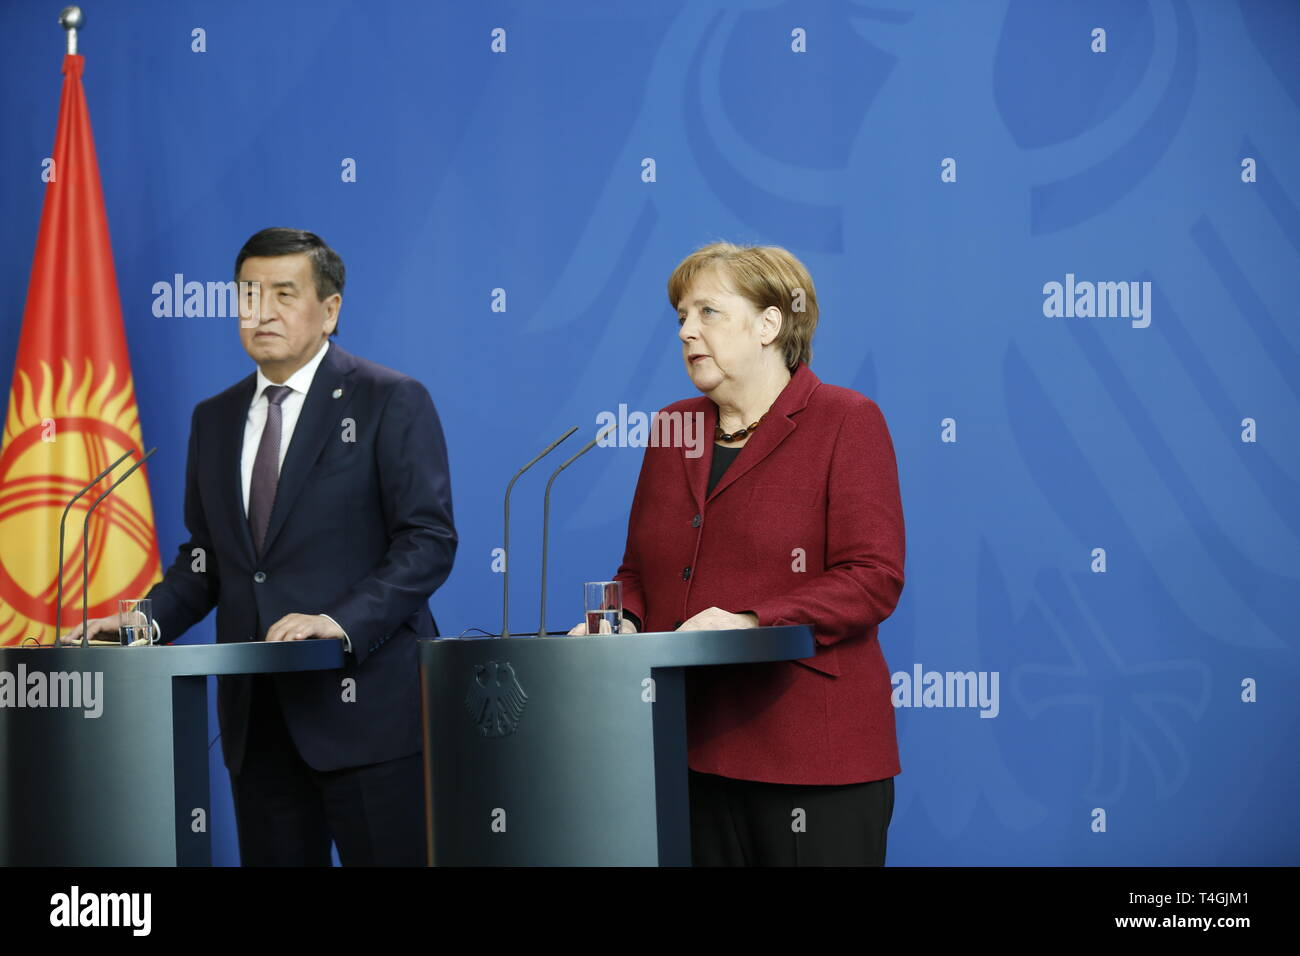 16.04.2019, Berlin, Germany, Chancellor Angela Merkel and the Kyrgyz President, Sooronbaj Dshejenbekow in statements to the press in the Chancellery. - Stock Image